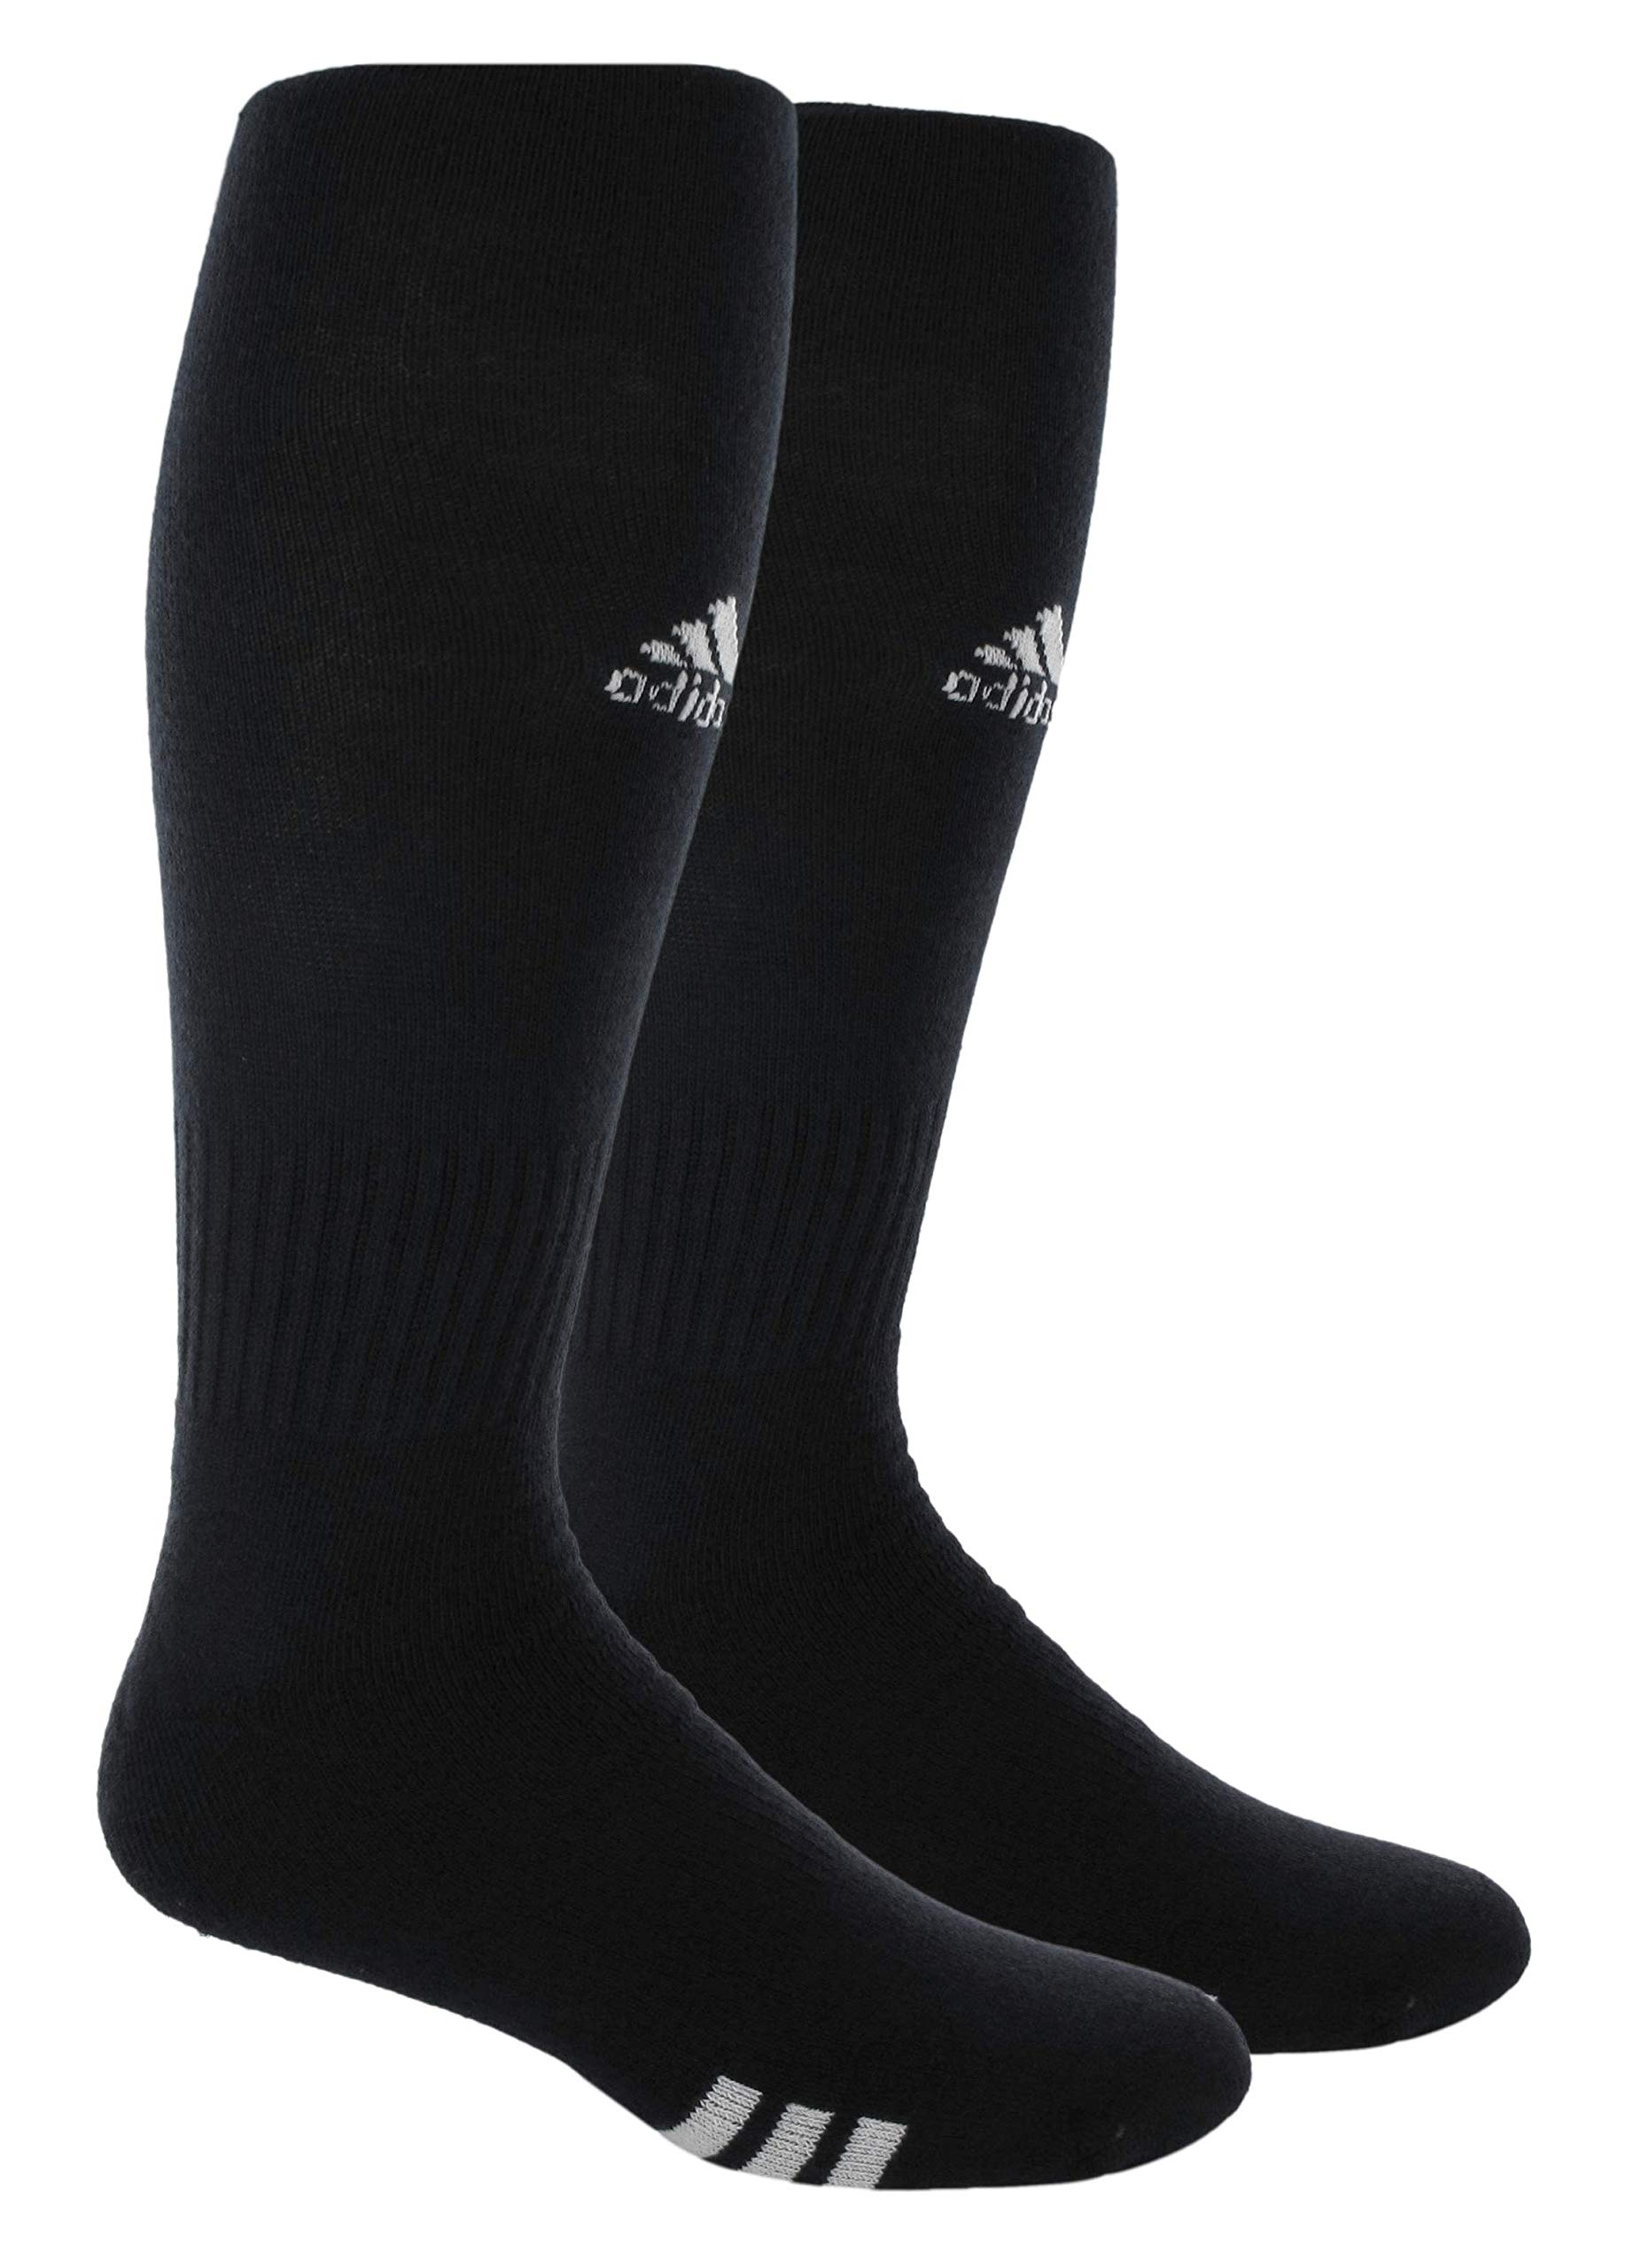 adidas Unisex Rivalry Field OTC Sock (2-Pair), Black/White, 9C-1Y by adidas